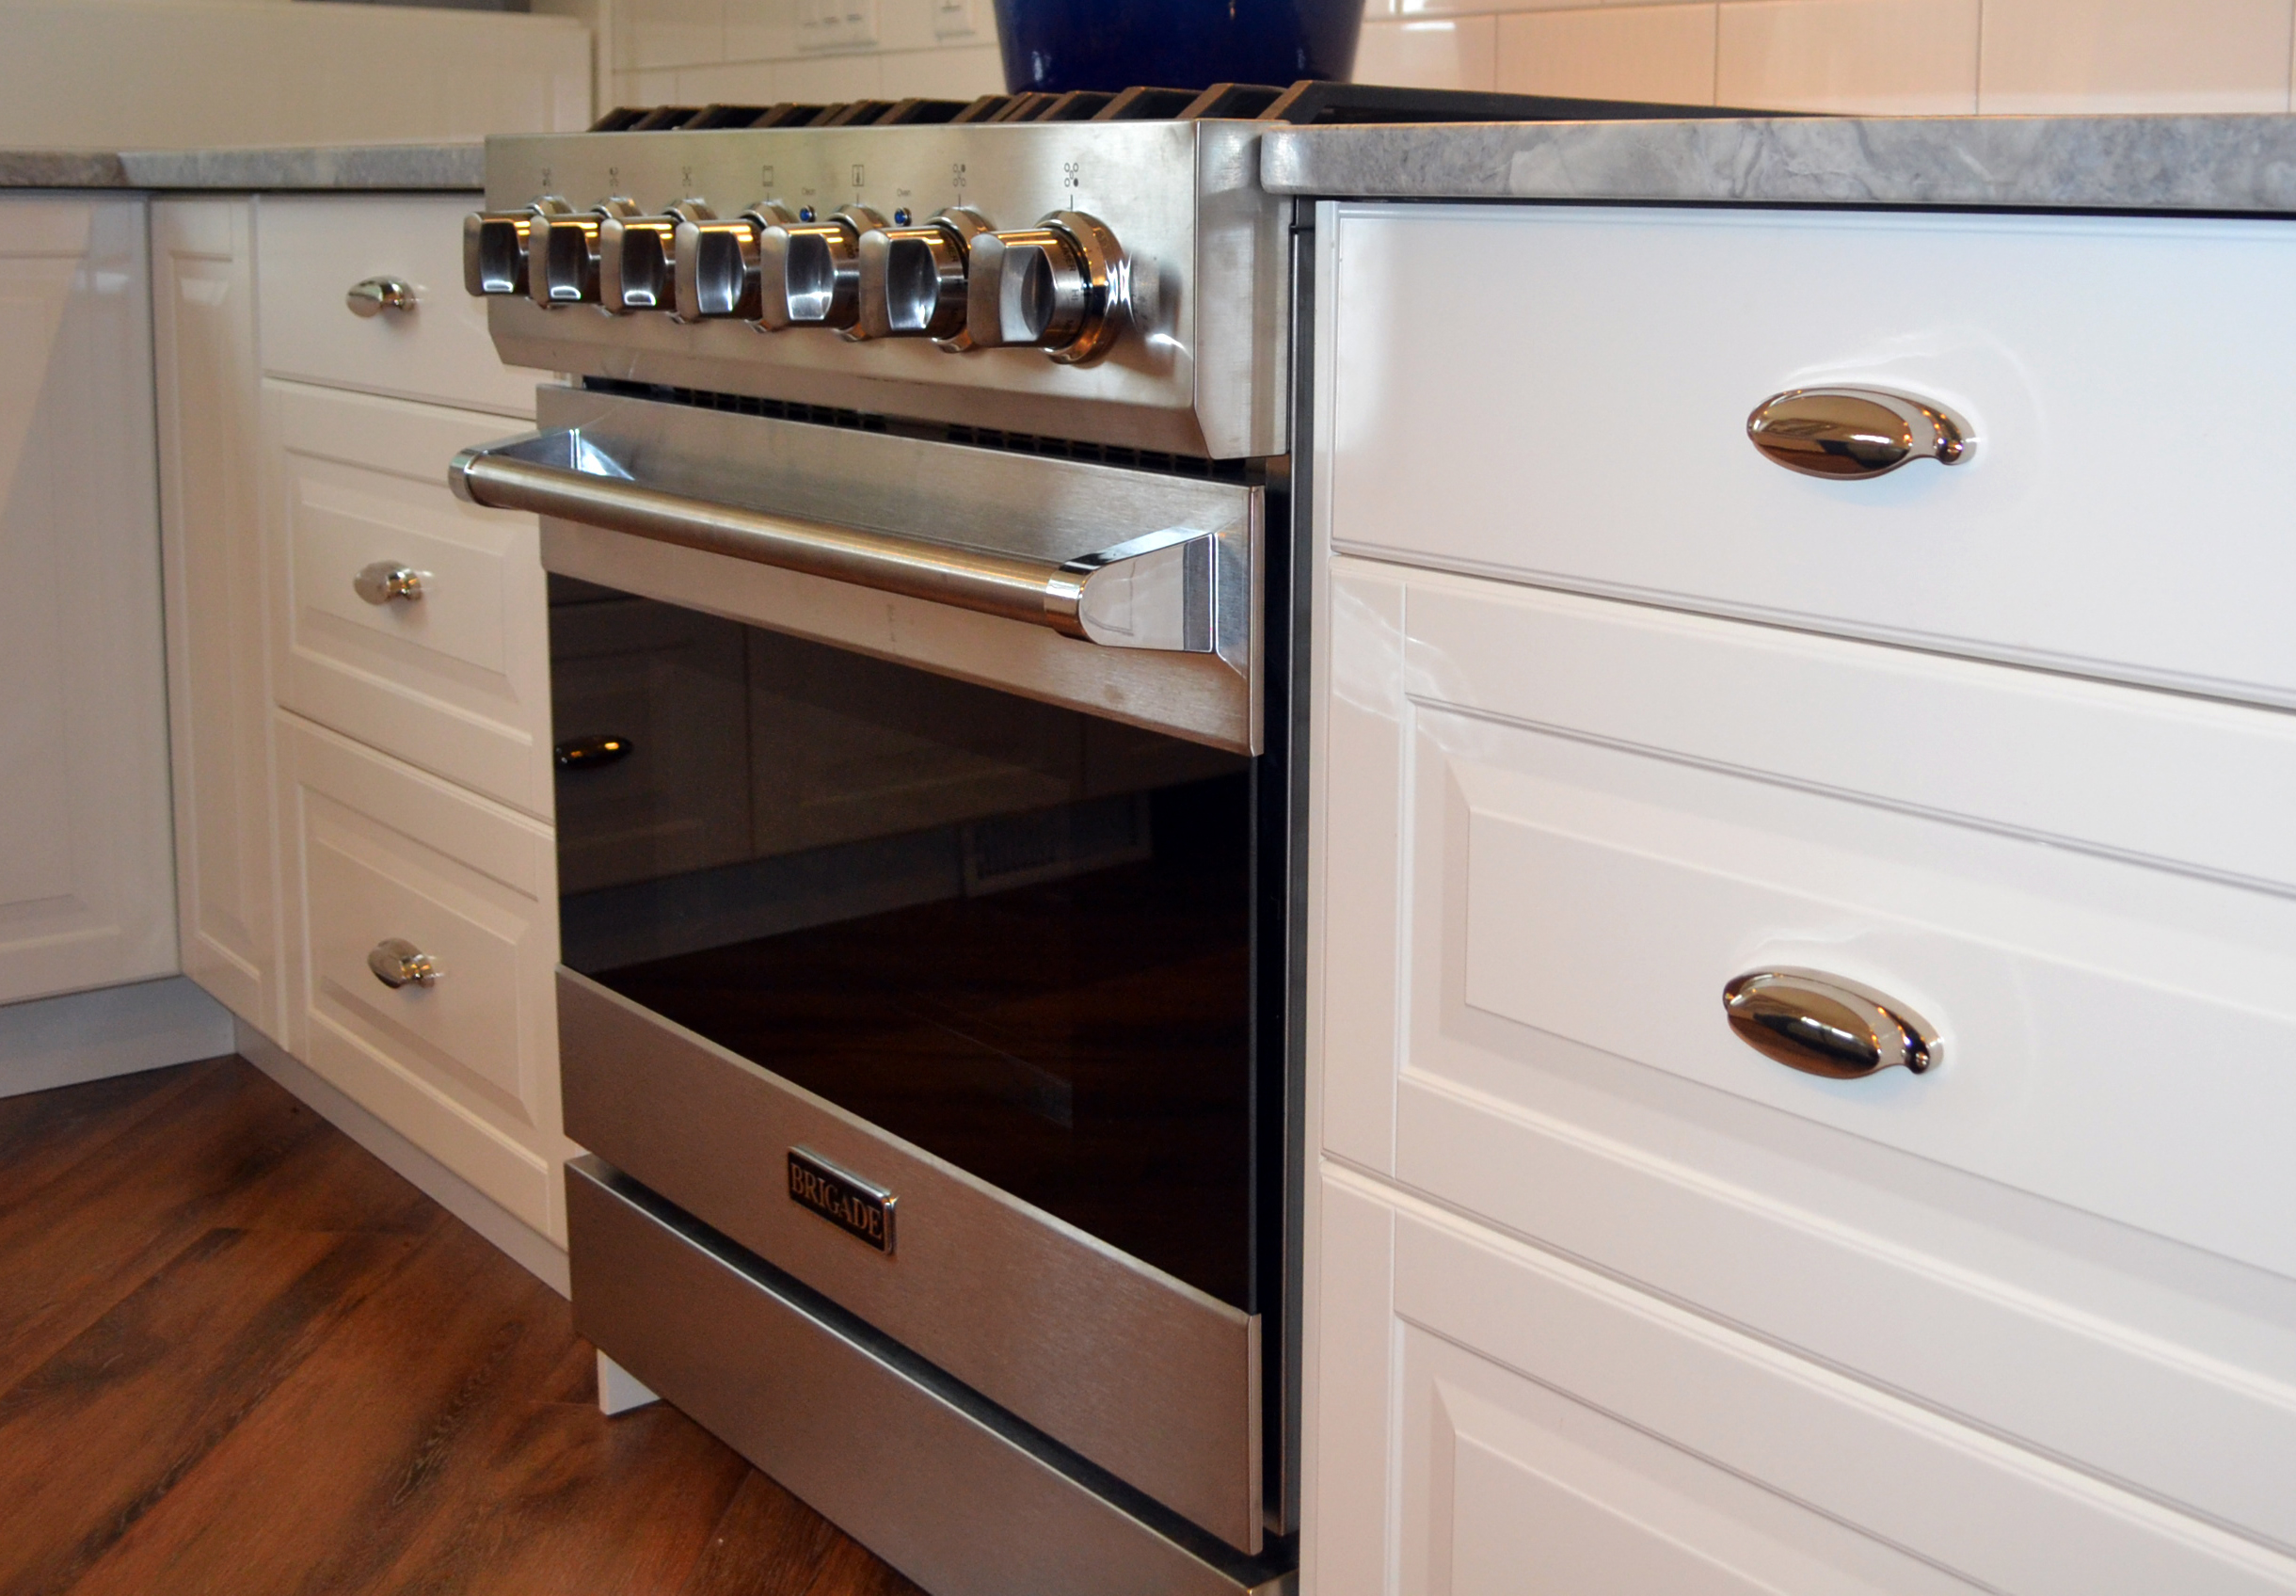 What Is The Best Brand For Kitchen Appliances Site Consumerreports Org